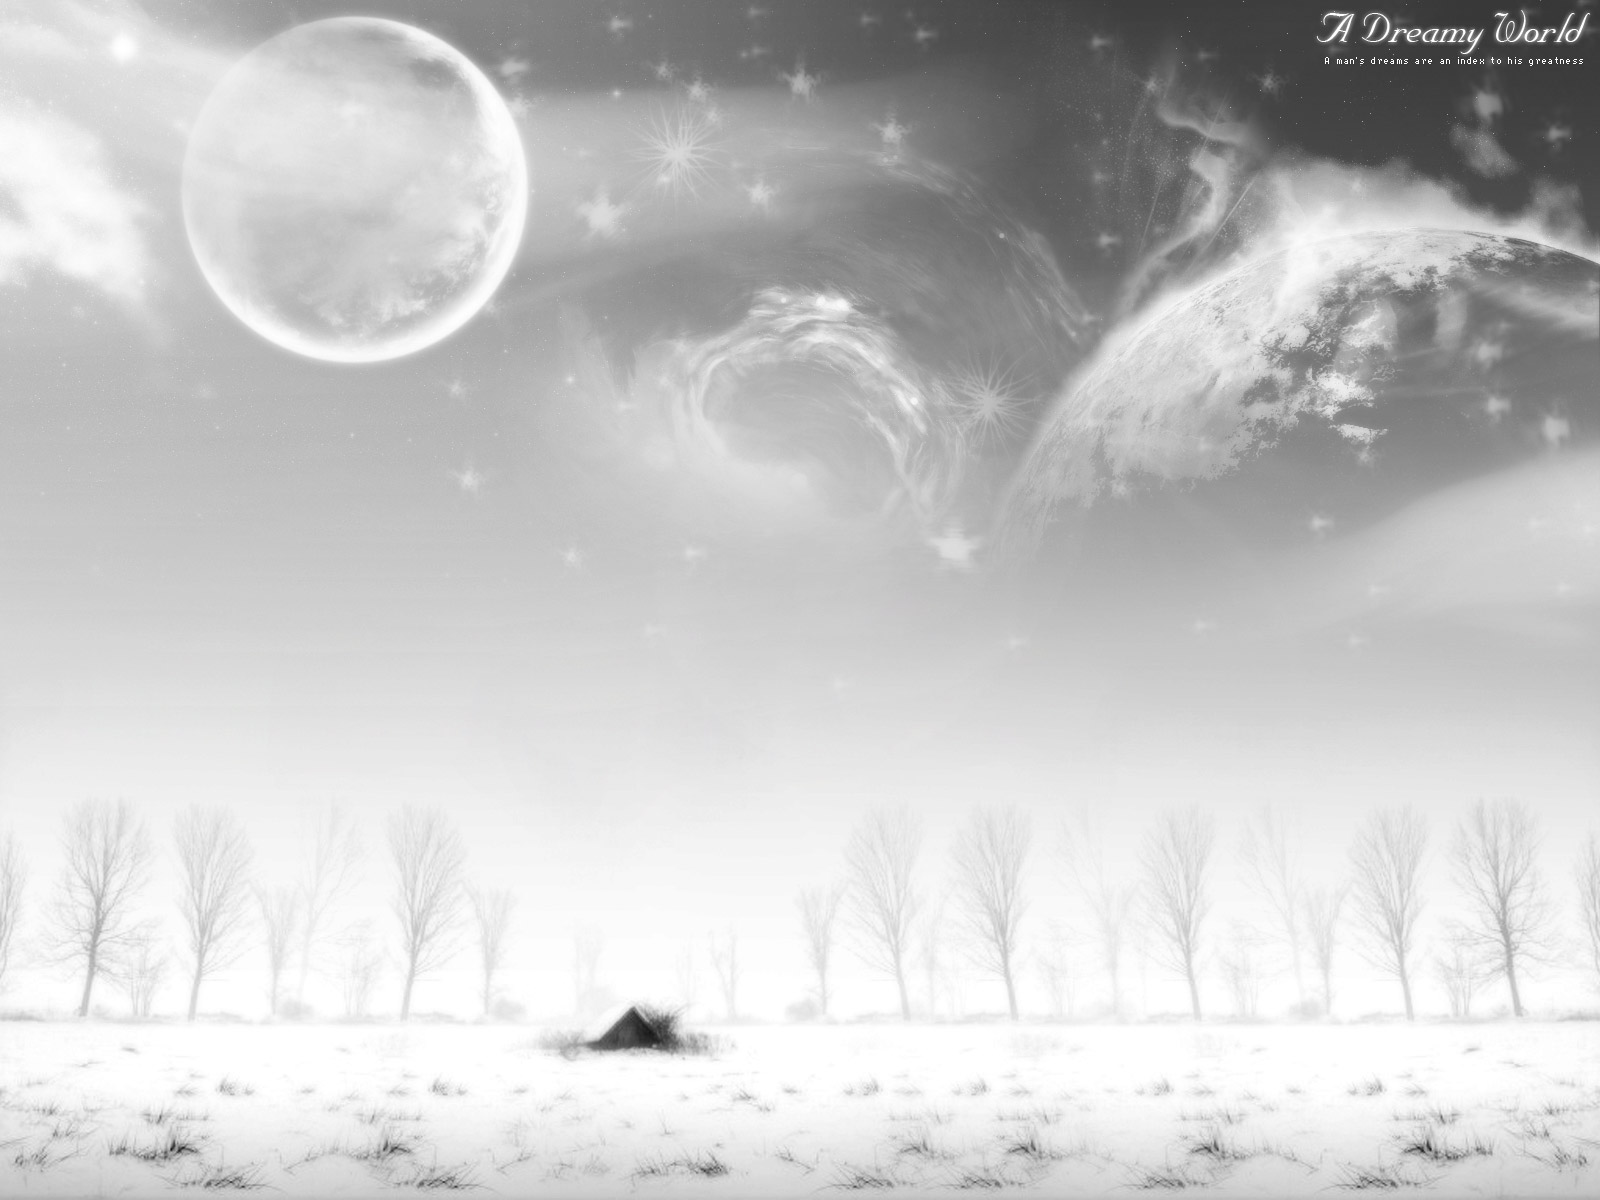 Dreamy World clipart #15, Download drawings